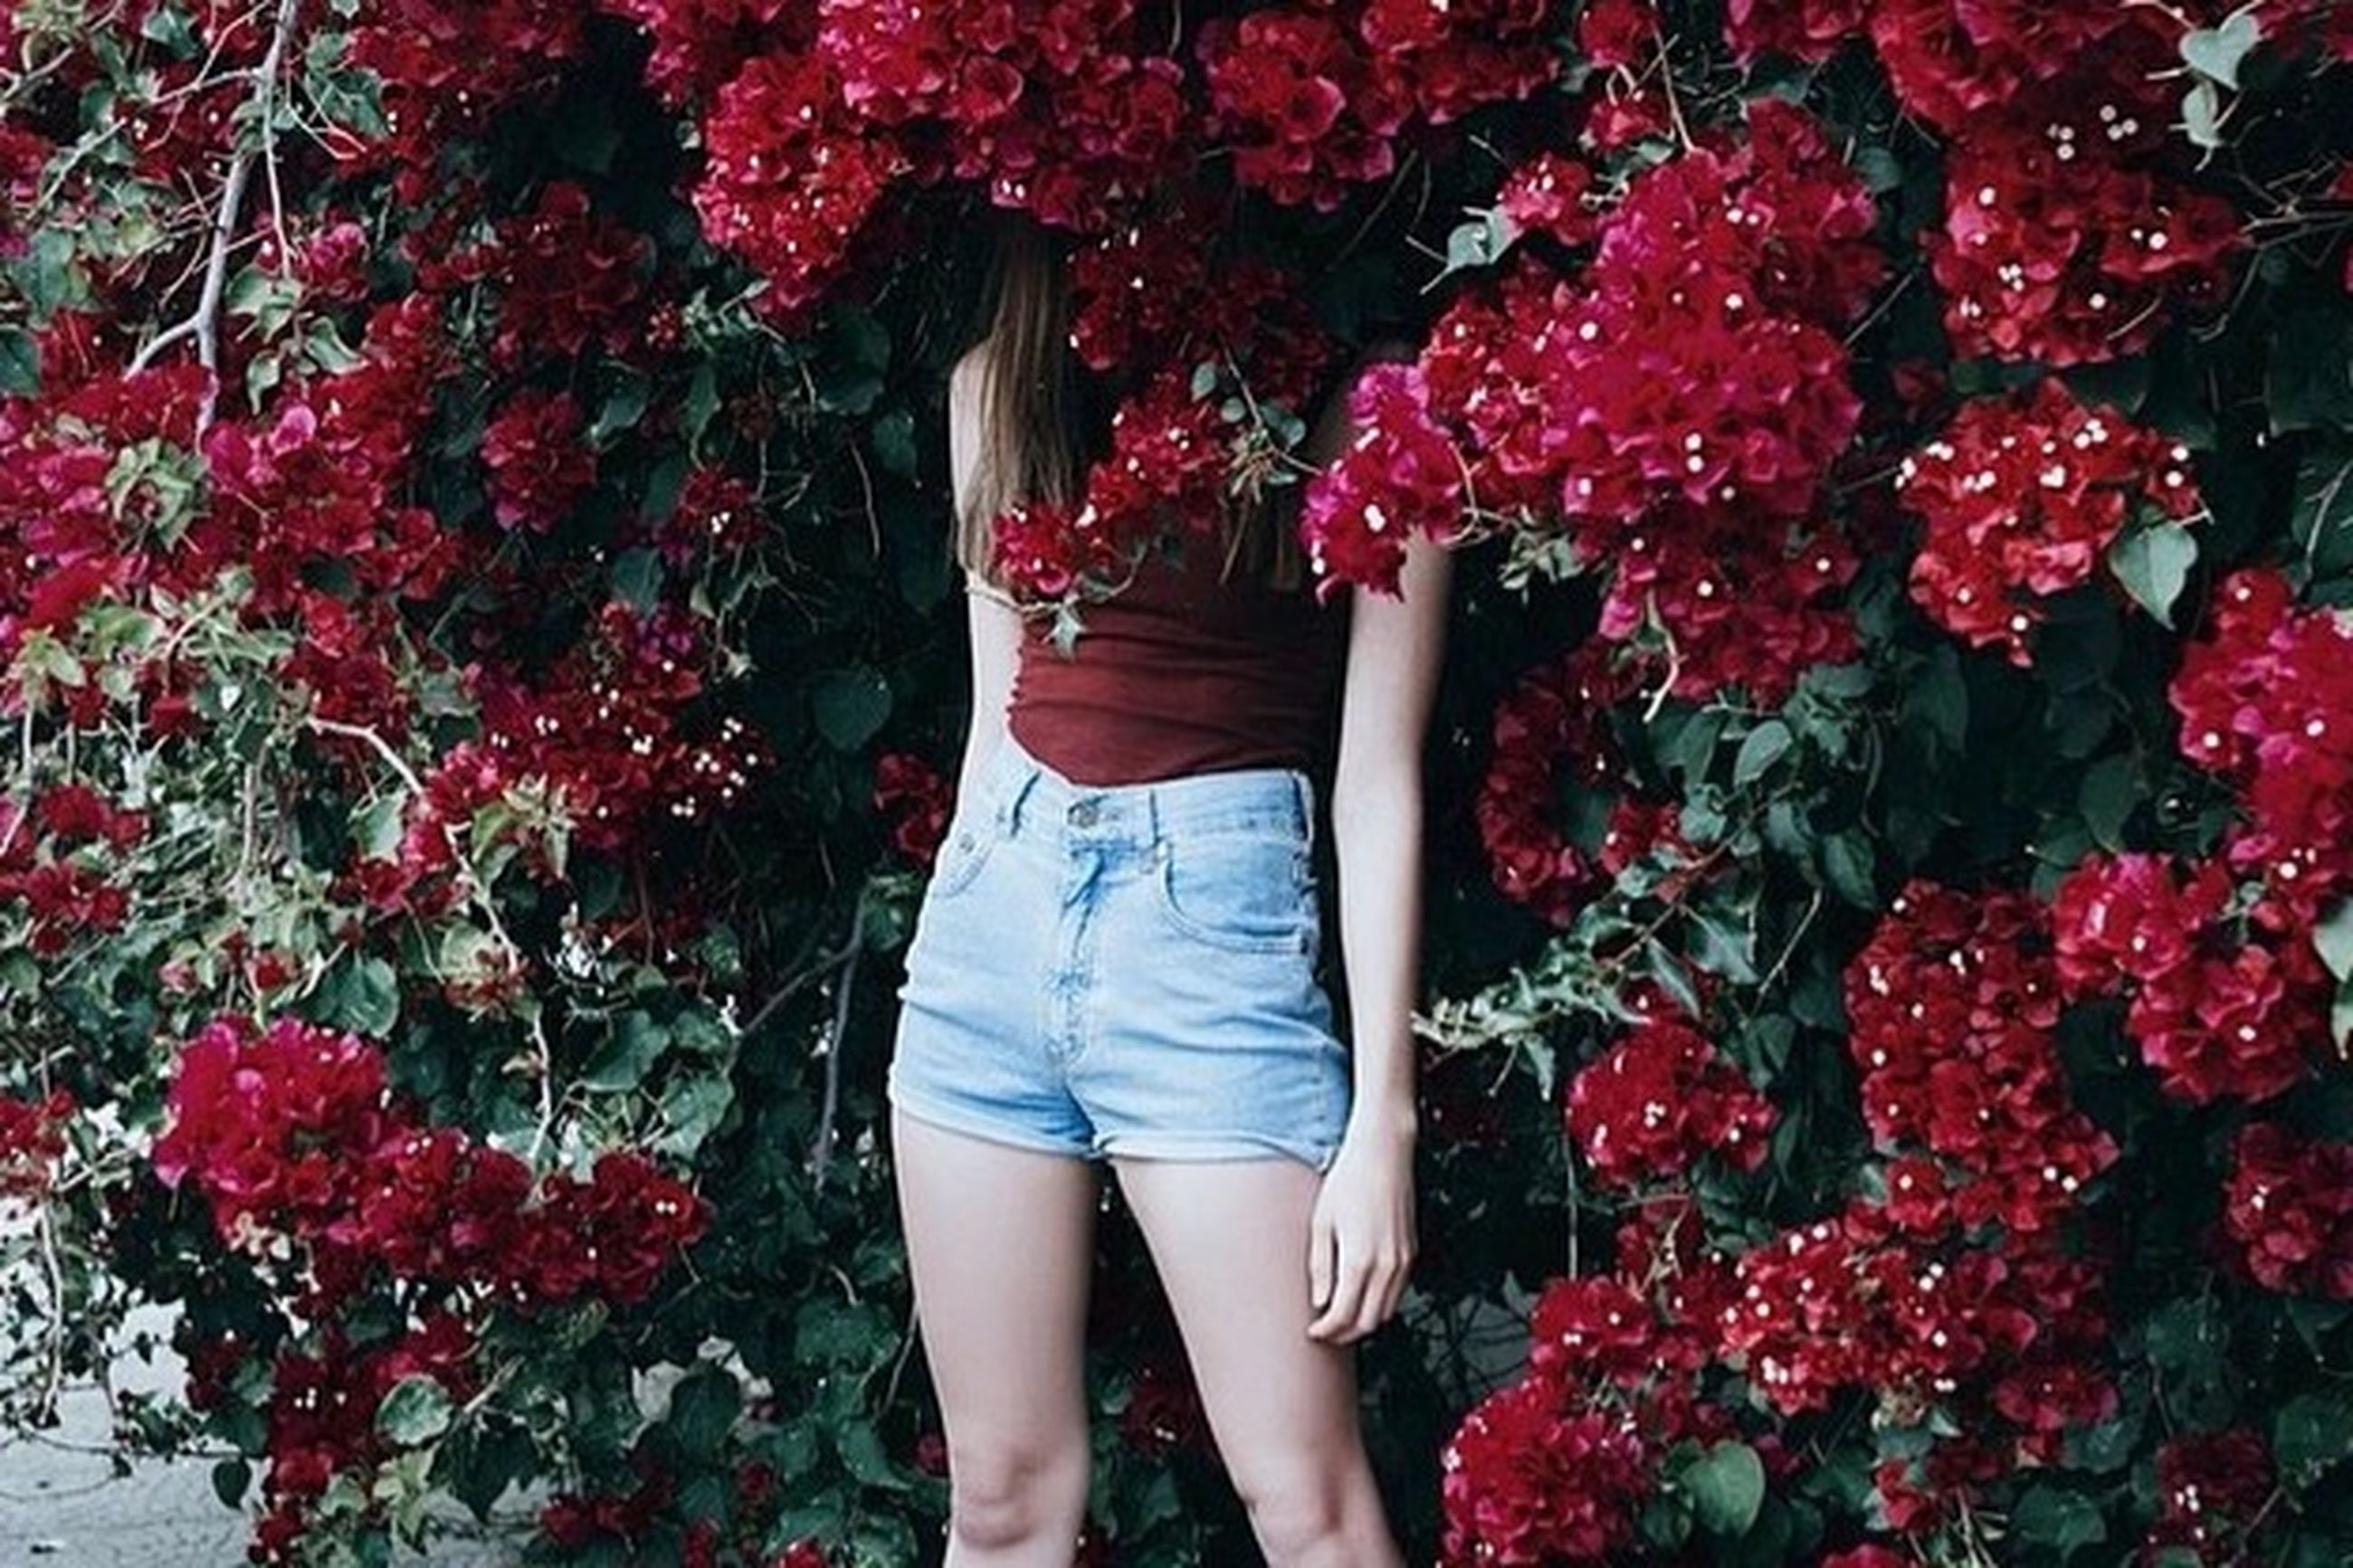 flower, lifestyles, person, standing, red, leisure activity, casual clothing, tree, young women, rear view, freshness, dress, growth, young adult, pink color, plant, outdoors, nature